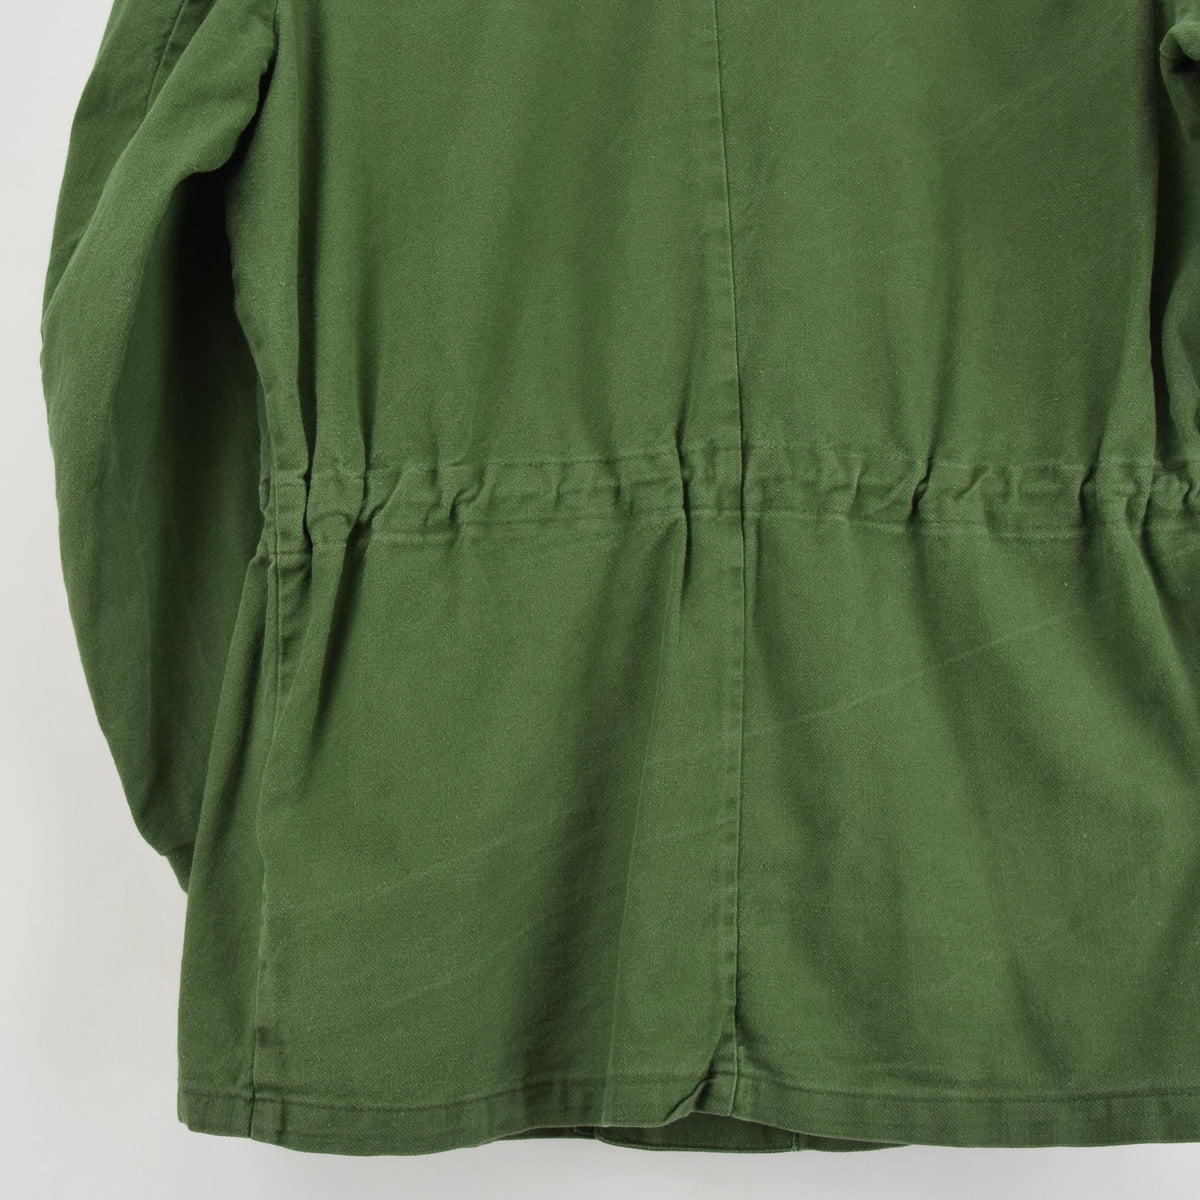 Vintage Swedish Worker Style Distressed Green Military Field Shirt Jacket M back hem